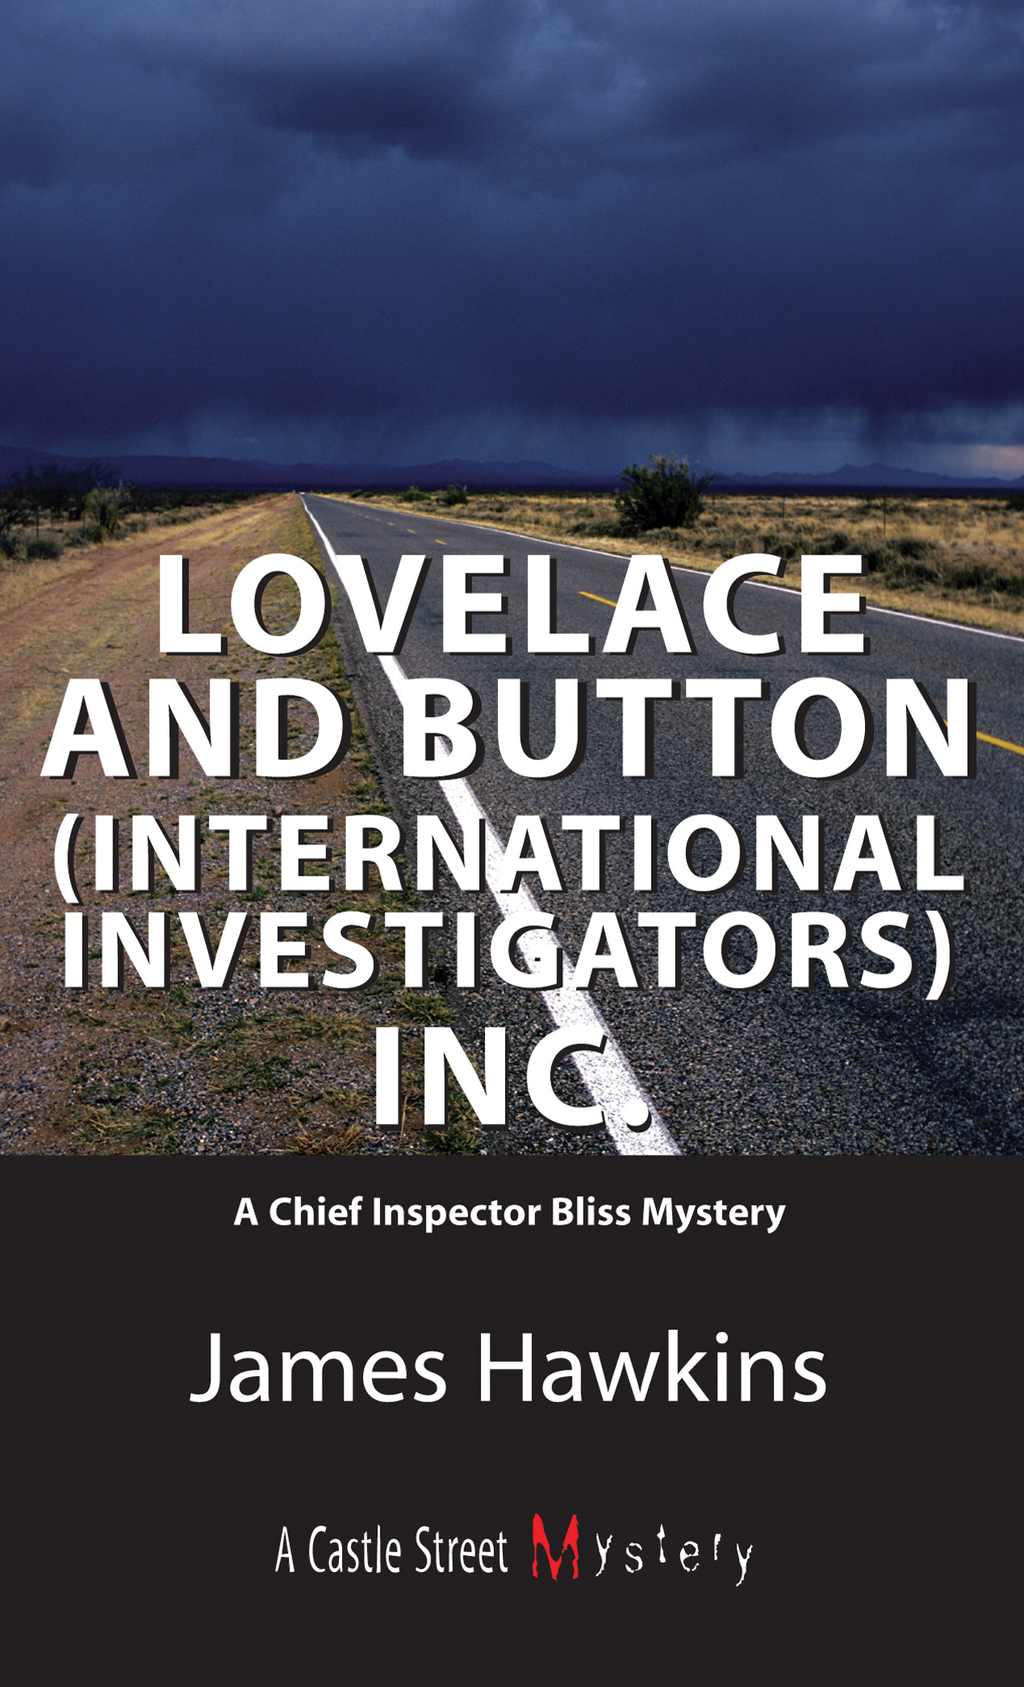 Lovelace and Button (International Investigators) Inc. By: James Hawkins